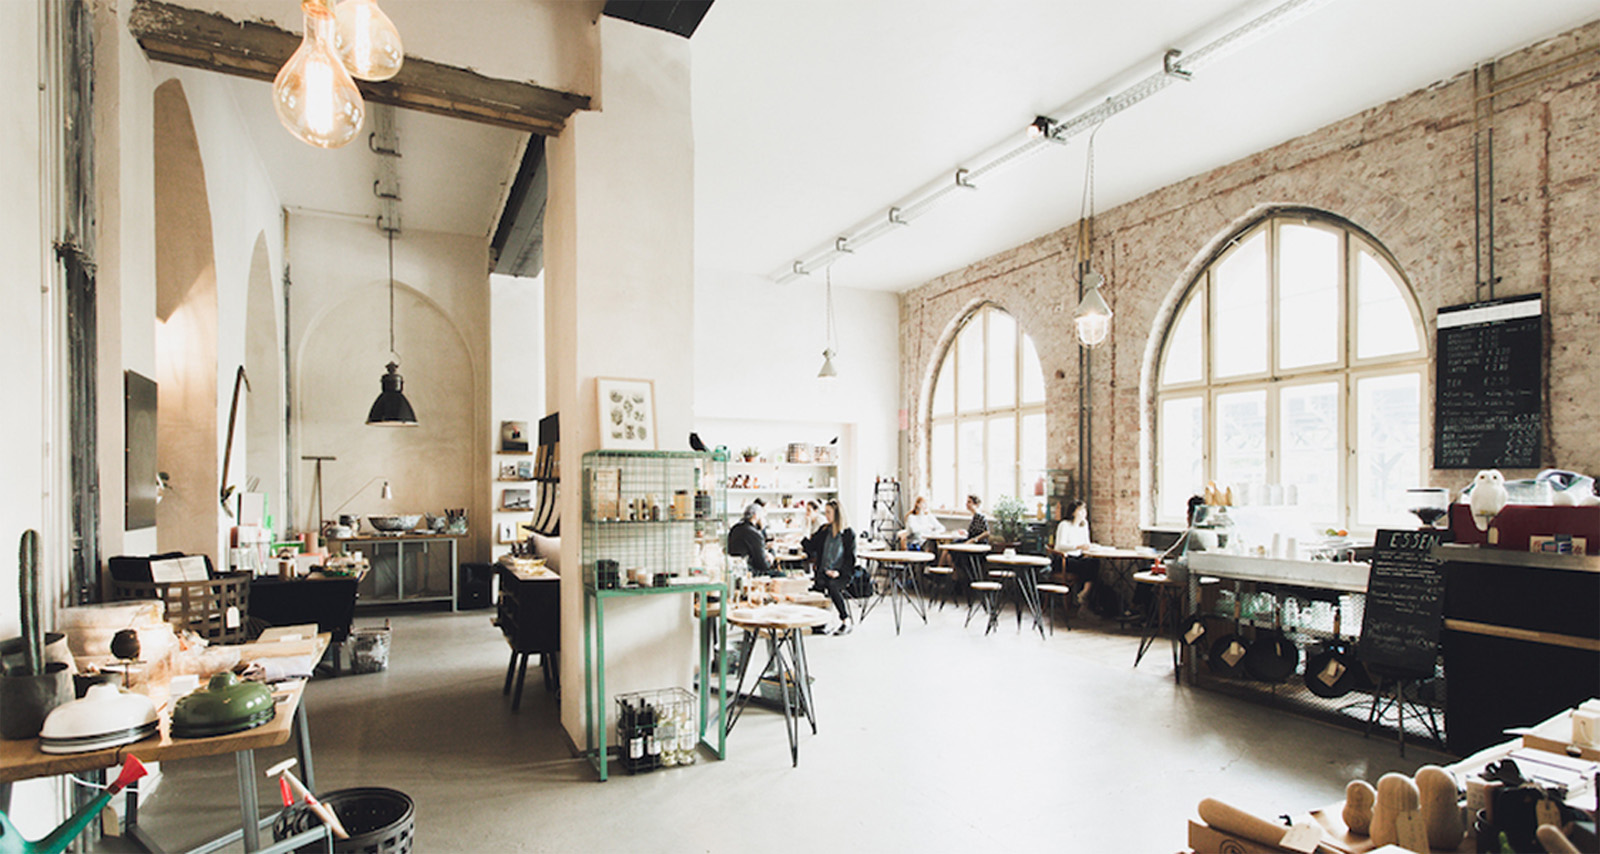 10 design shops to visit in Berlin - Interior Notes